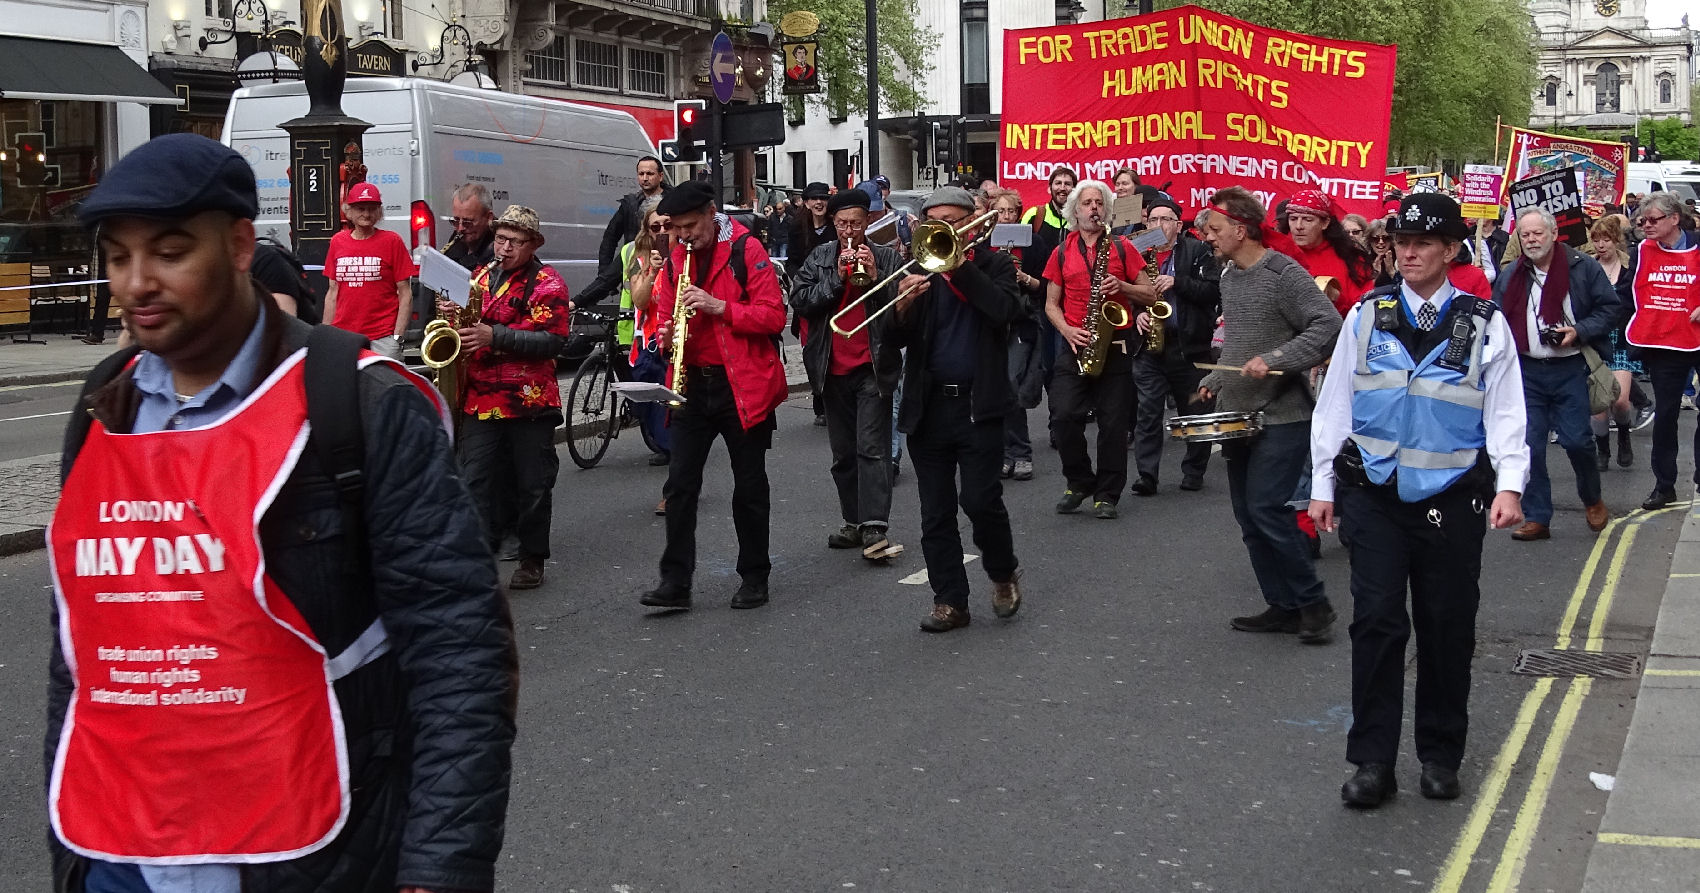 MARCH LED BY BAND